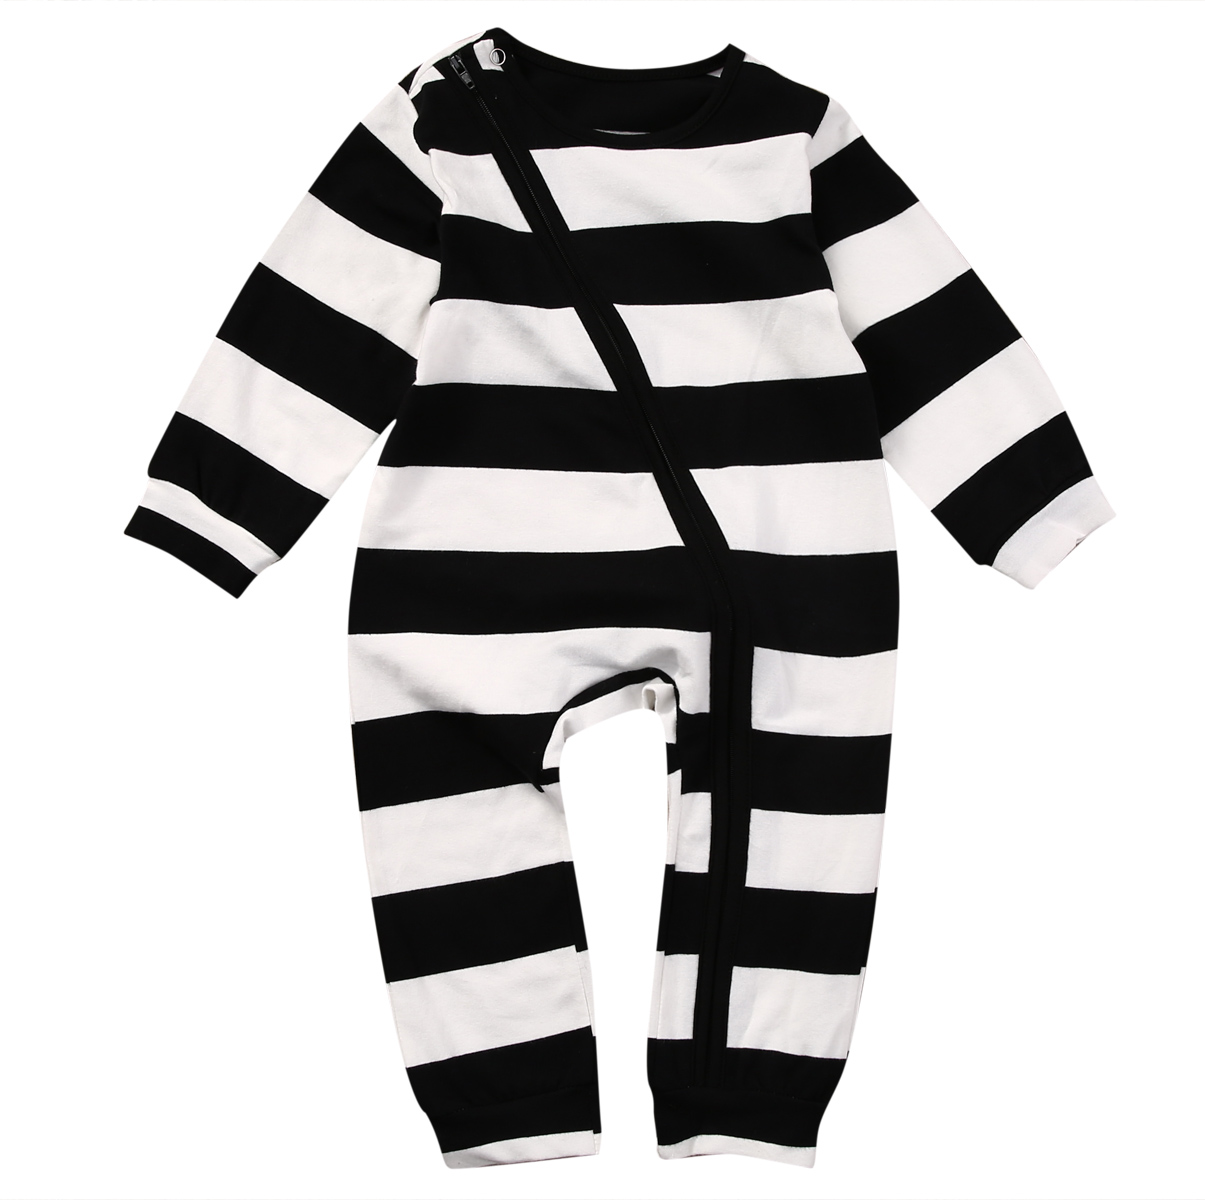 Pudcoco Baby Boys Clothes Zip Up Sleeper Long Sleeve Striped Infant Newborn Sleep and Play Suit appliques raglan sleeve zip up jacket